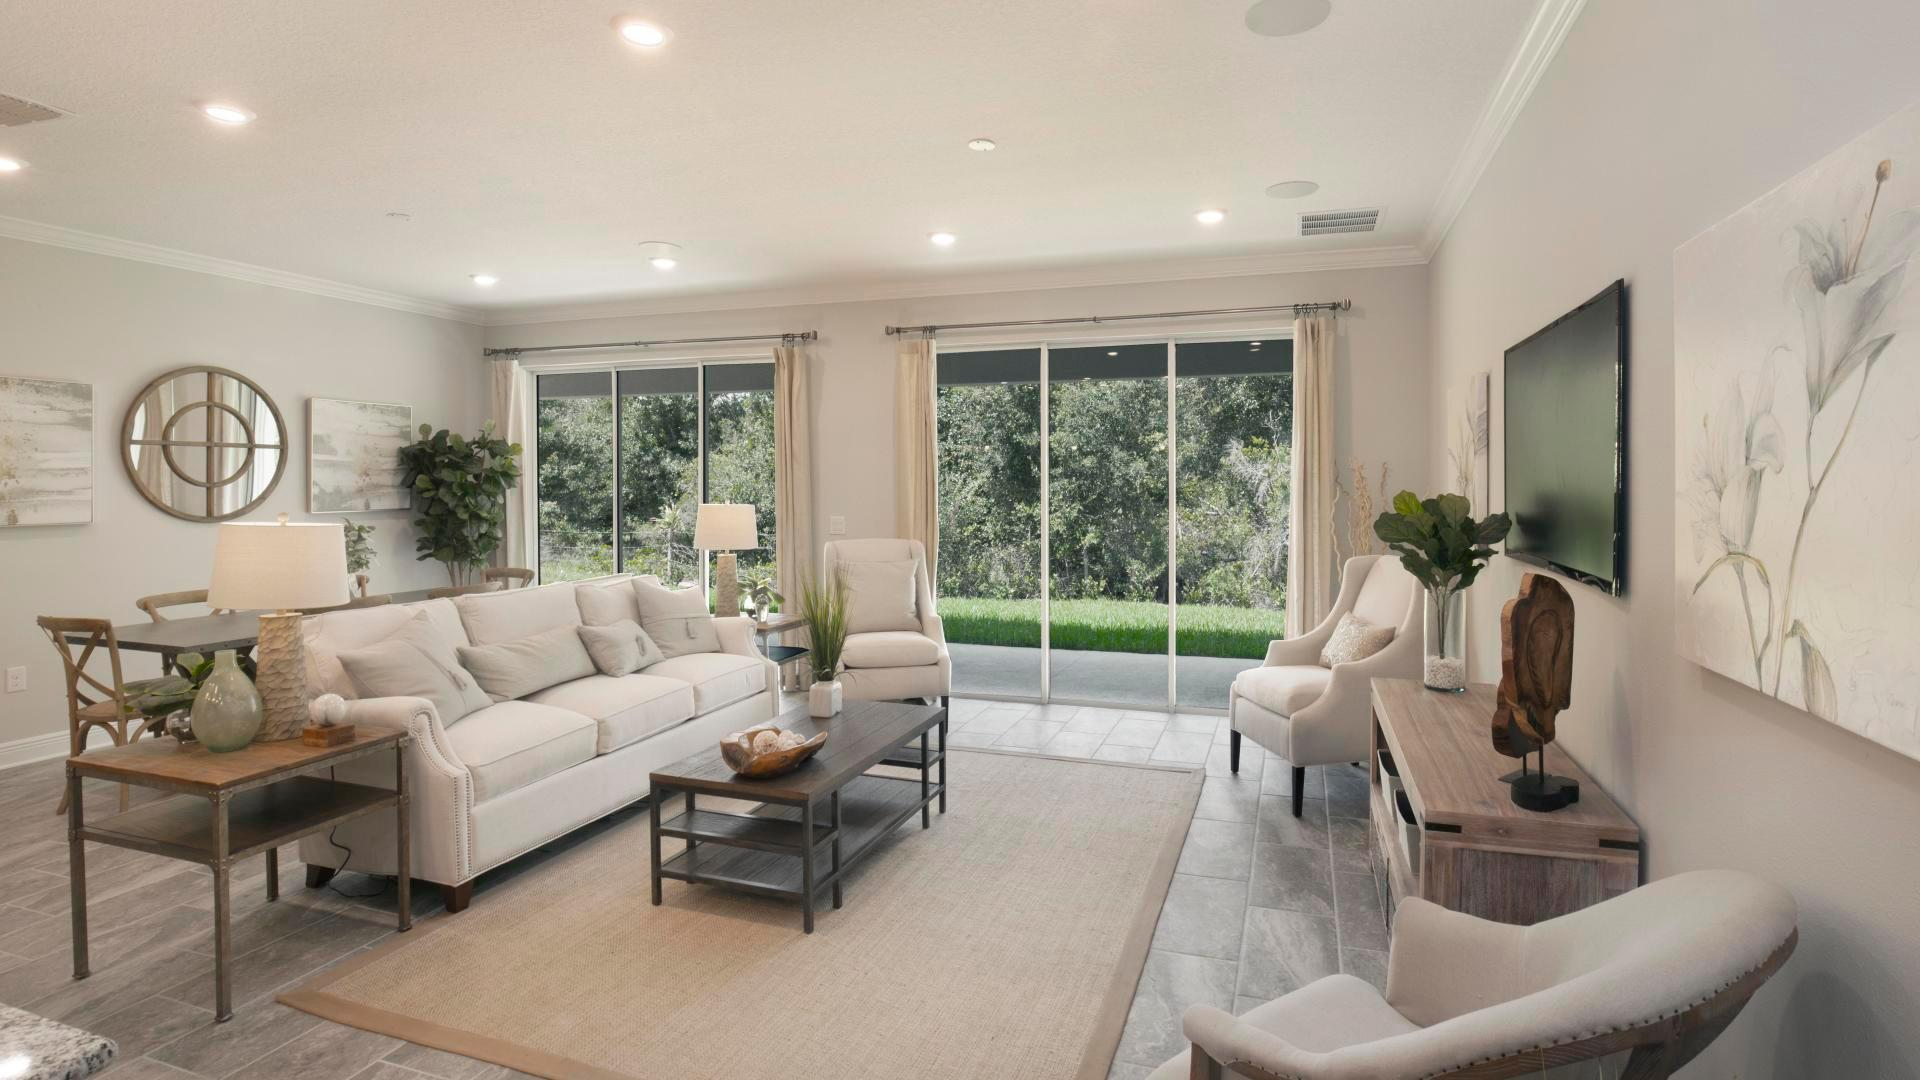 Living Area featured in the Huntington By Maronda Homes in Daytona Beach, FL